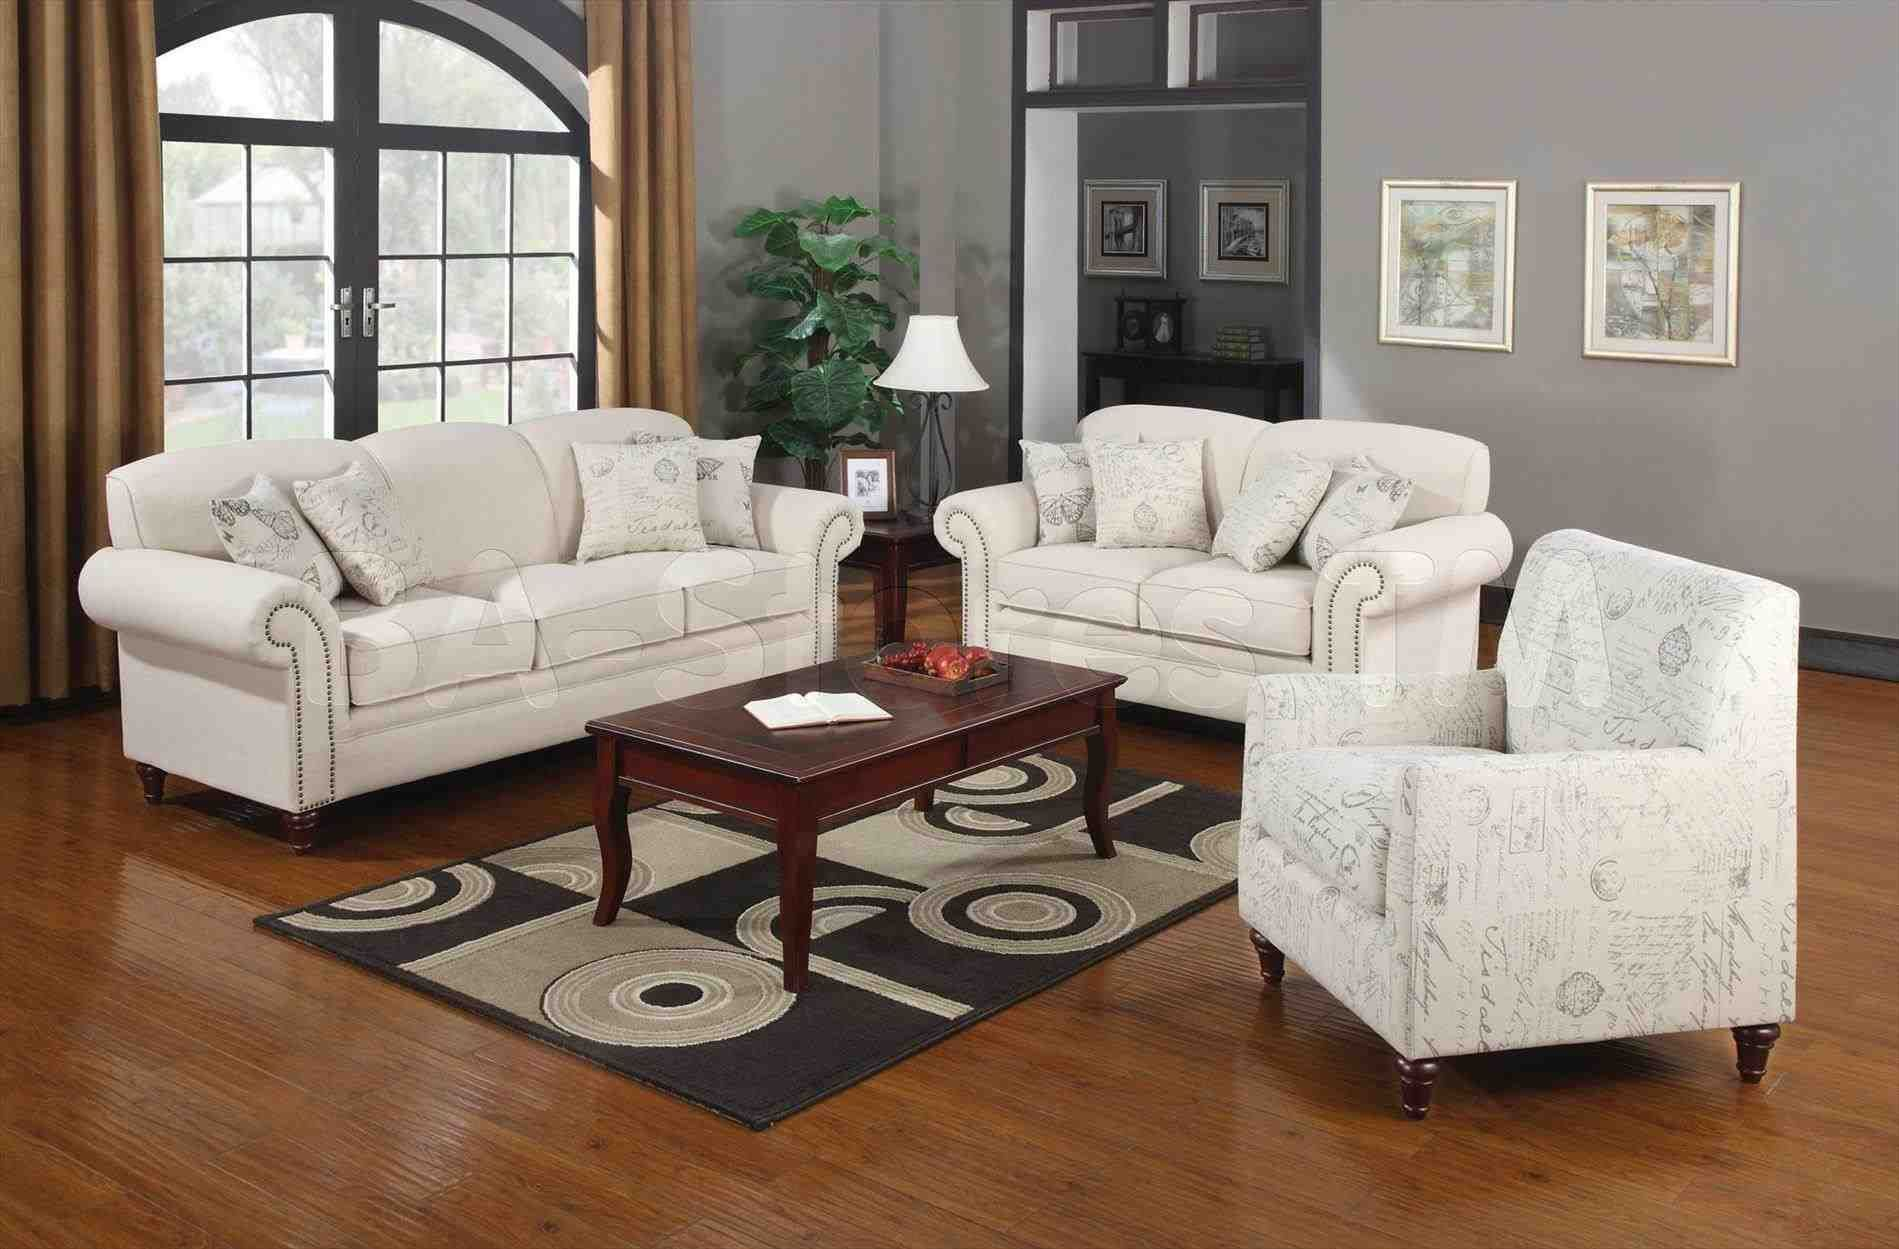 Cheap Living Room Furniture Sets For Sale Living Room Sofa Set Price India Furni Cheap Living Room Furniture Sofa And Loveseat Set Living Room Sets Furniture